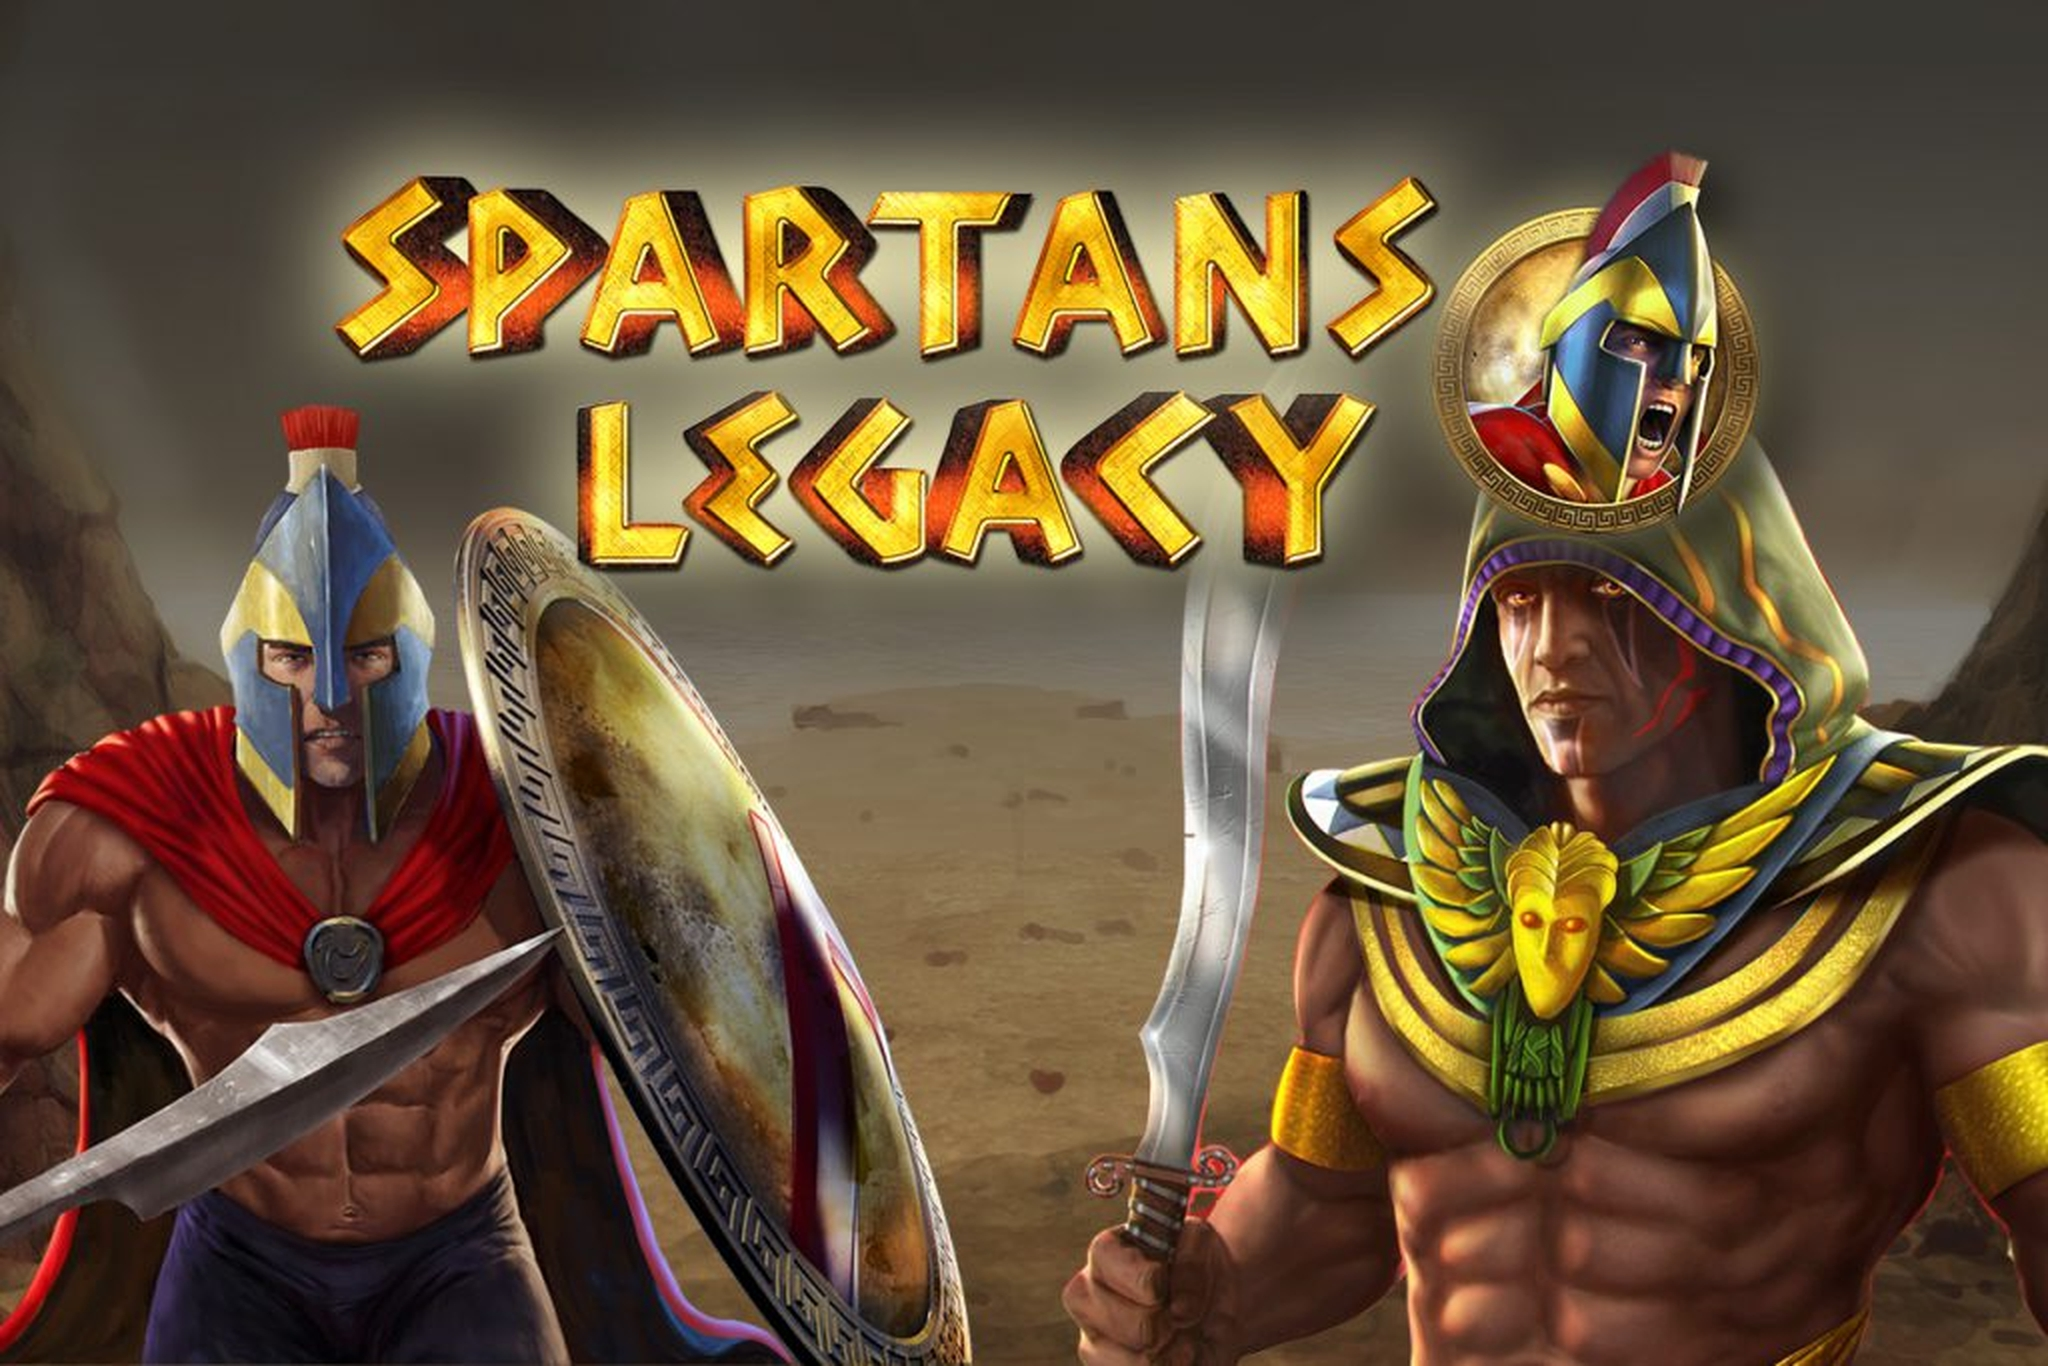 The Spartans Legacy Online Slot Demo Game by GameArt